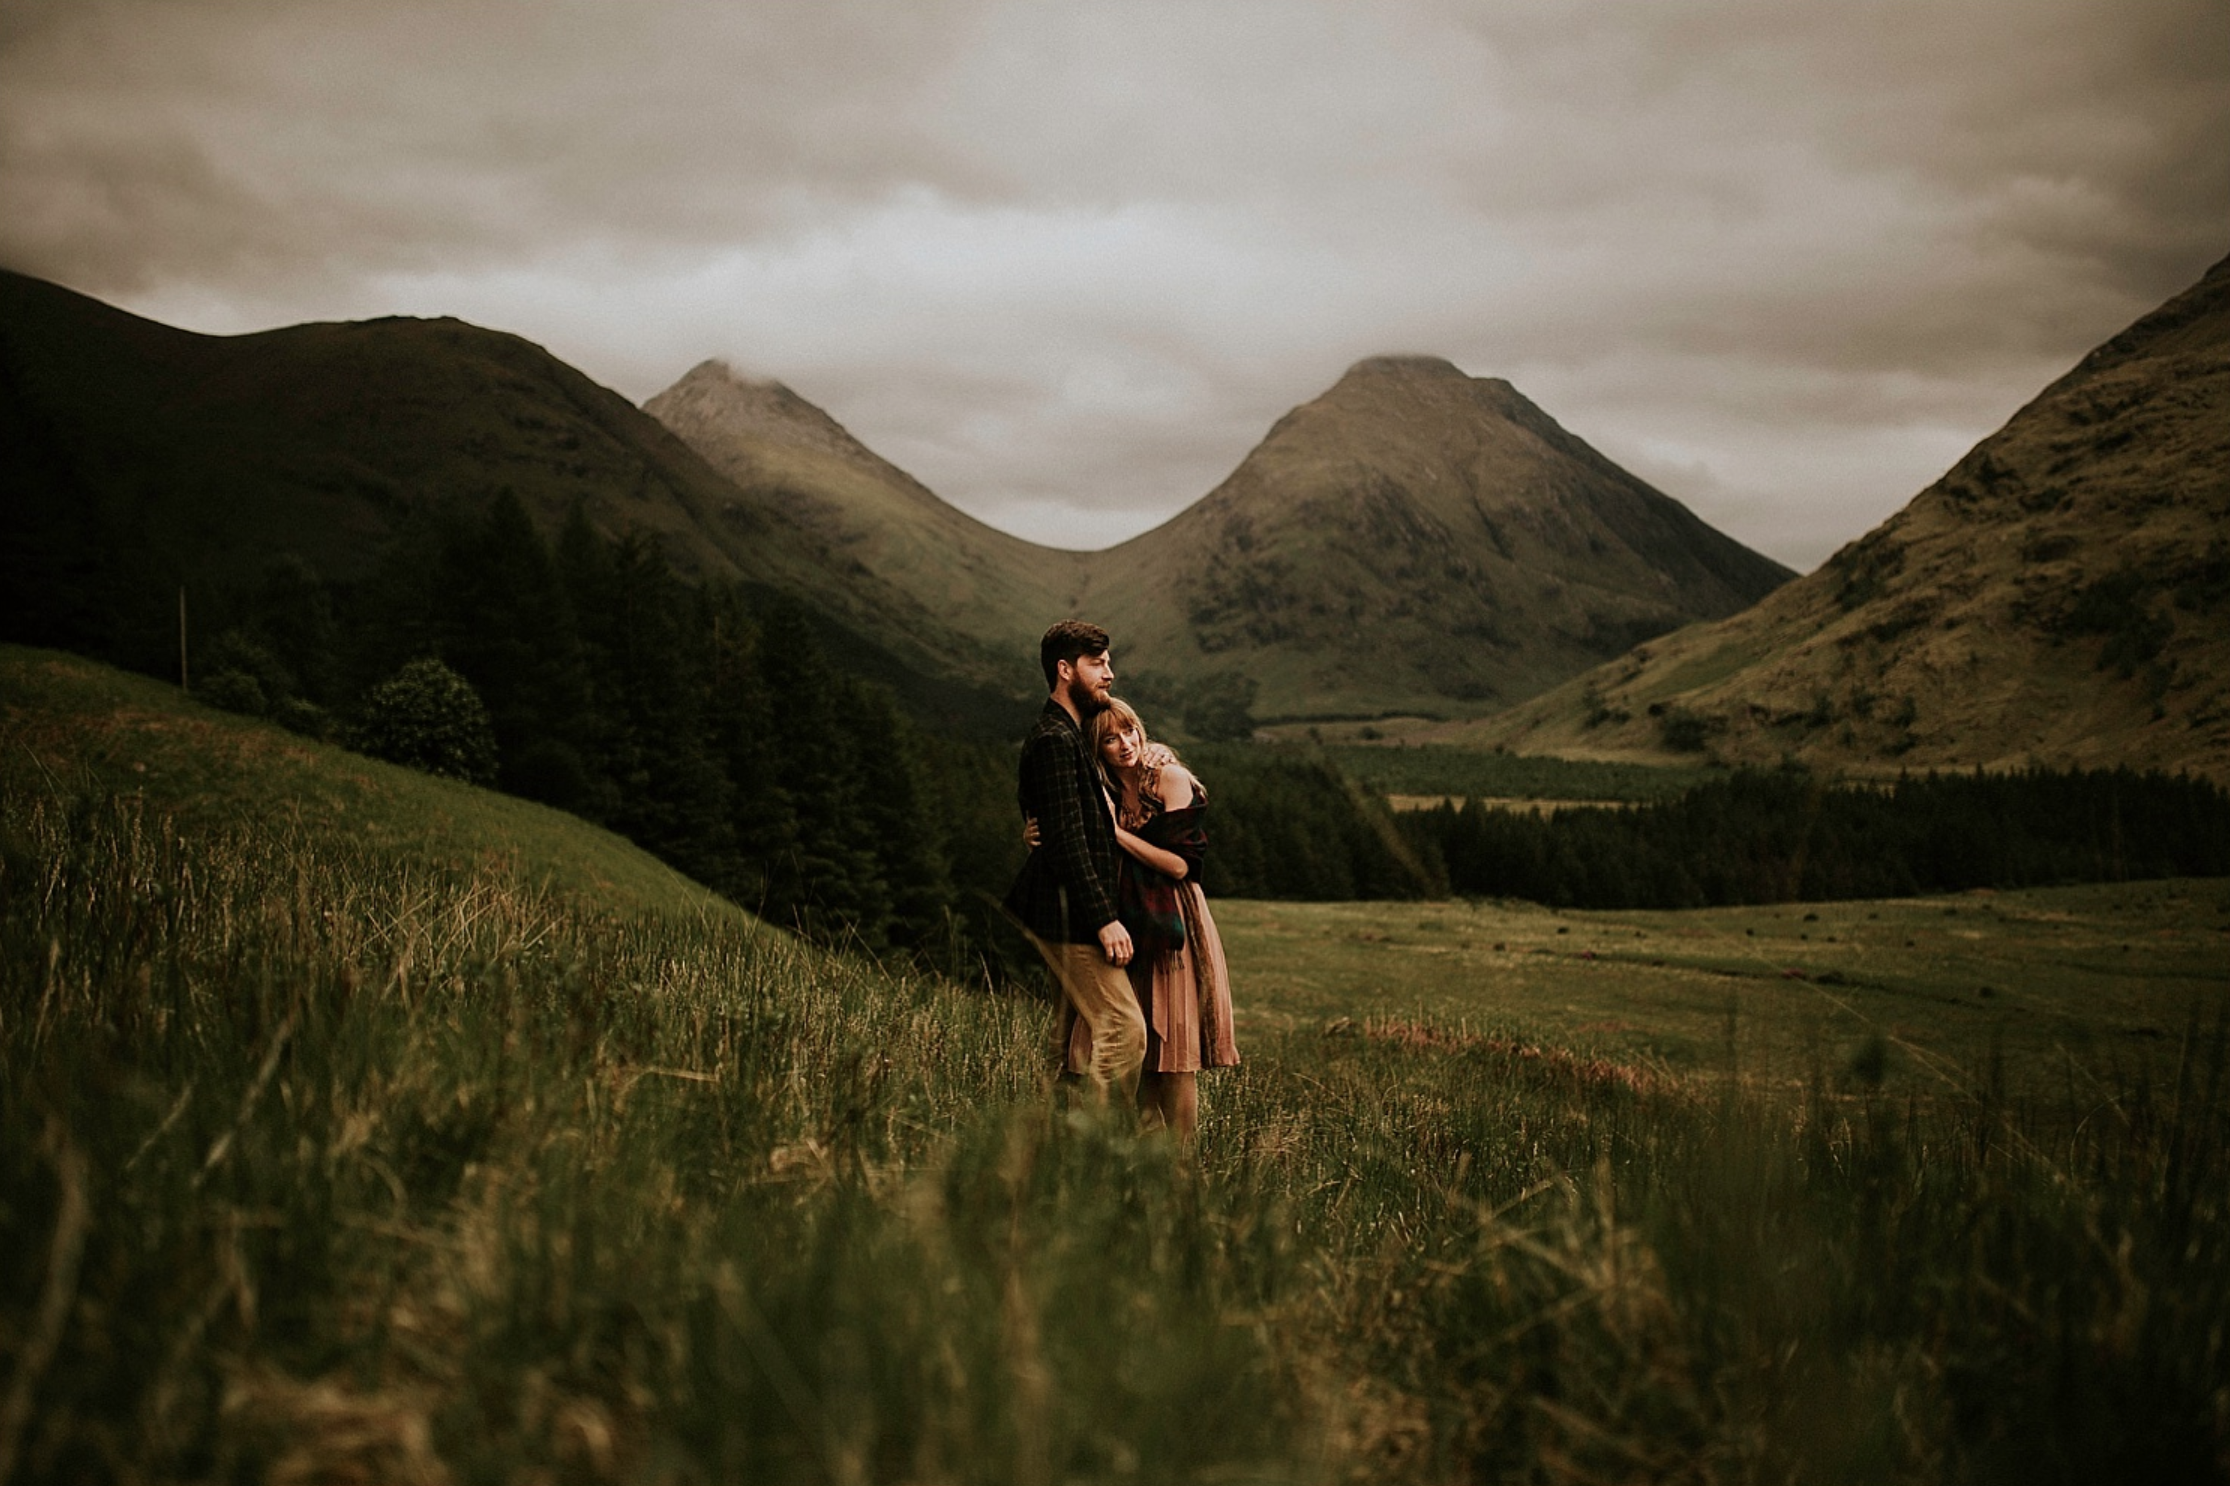 IN THE MIDDLE OF THE HILLS - GLENCOE